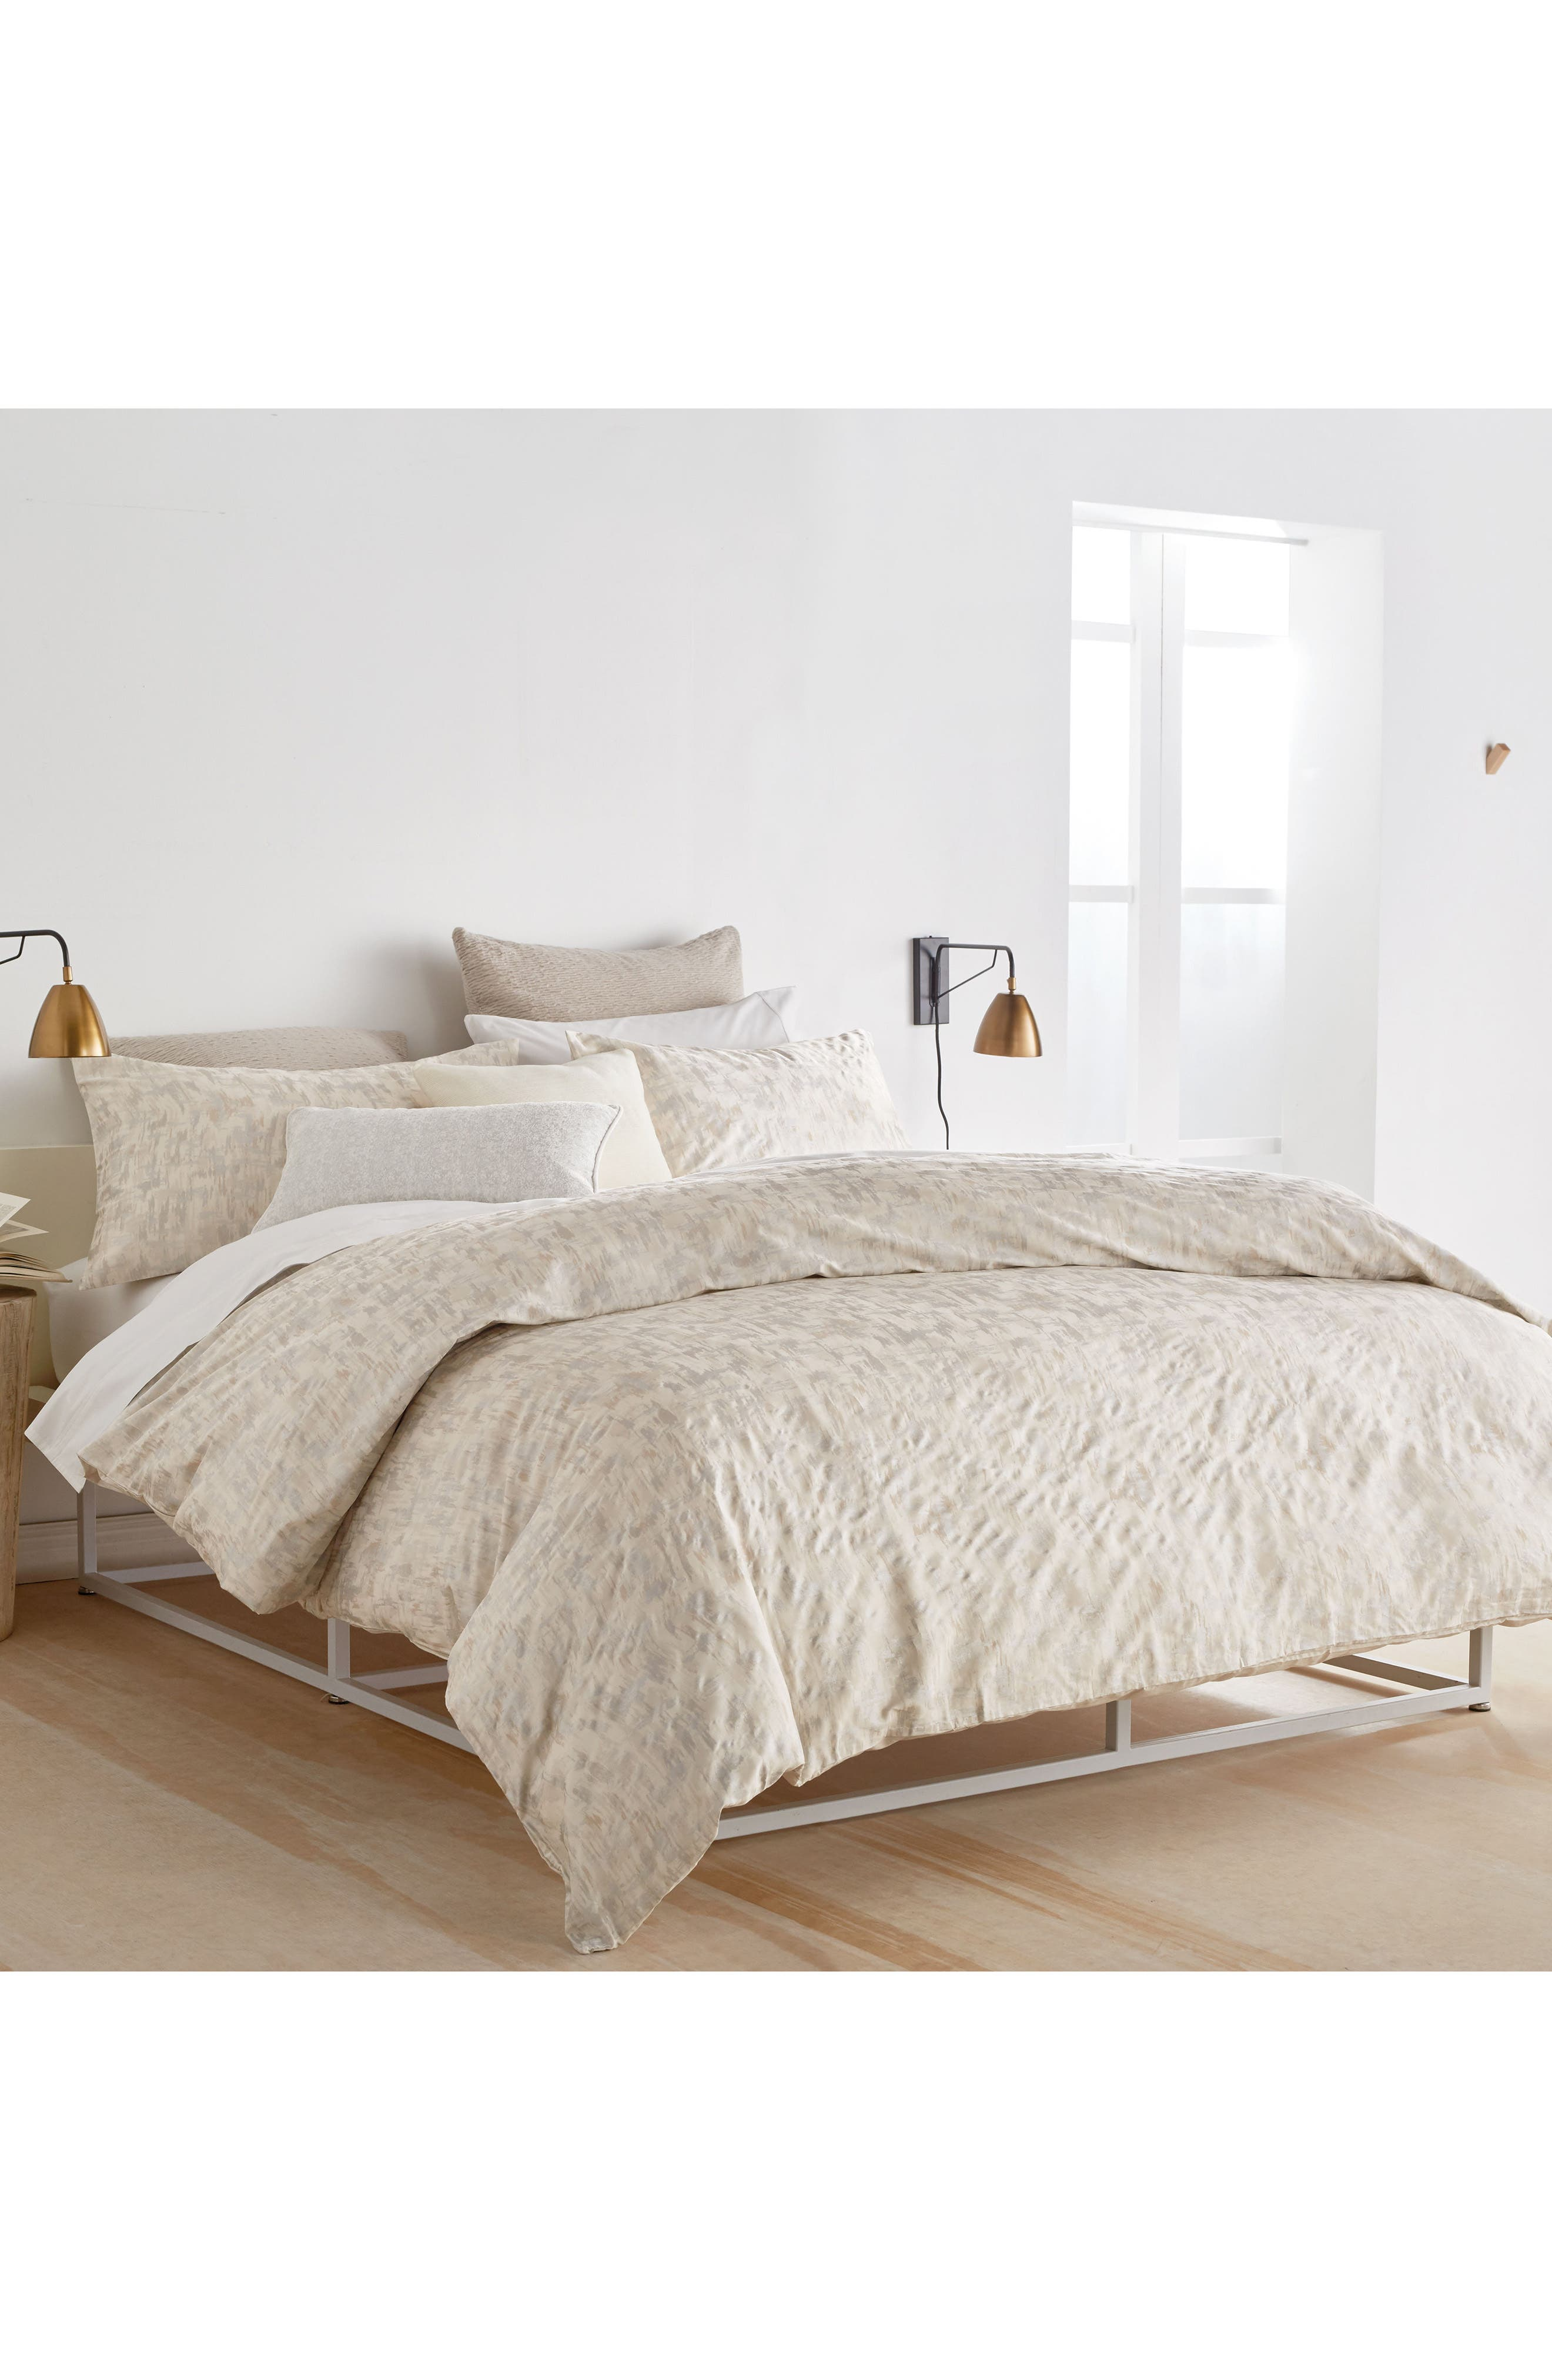 DKNY Motion Duvet Cover